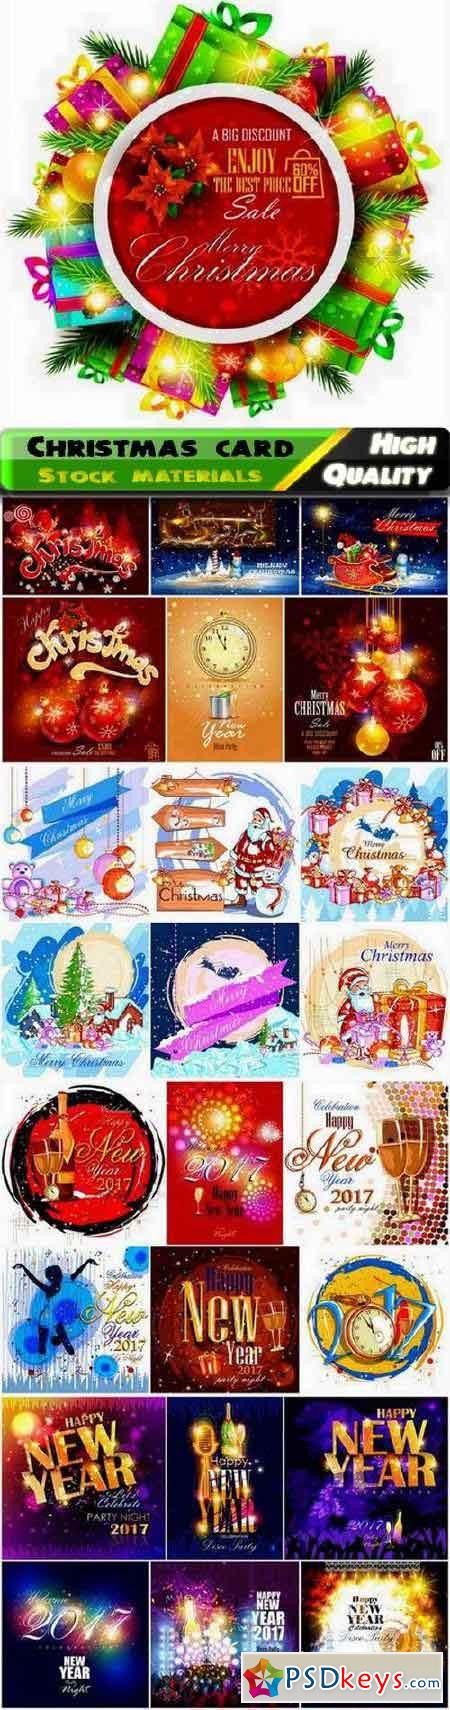 Merry Christmas holiday card with Santa Claus and Fir tree 25 Eps